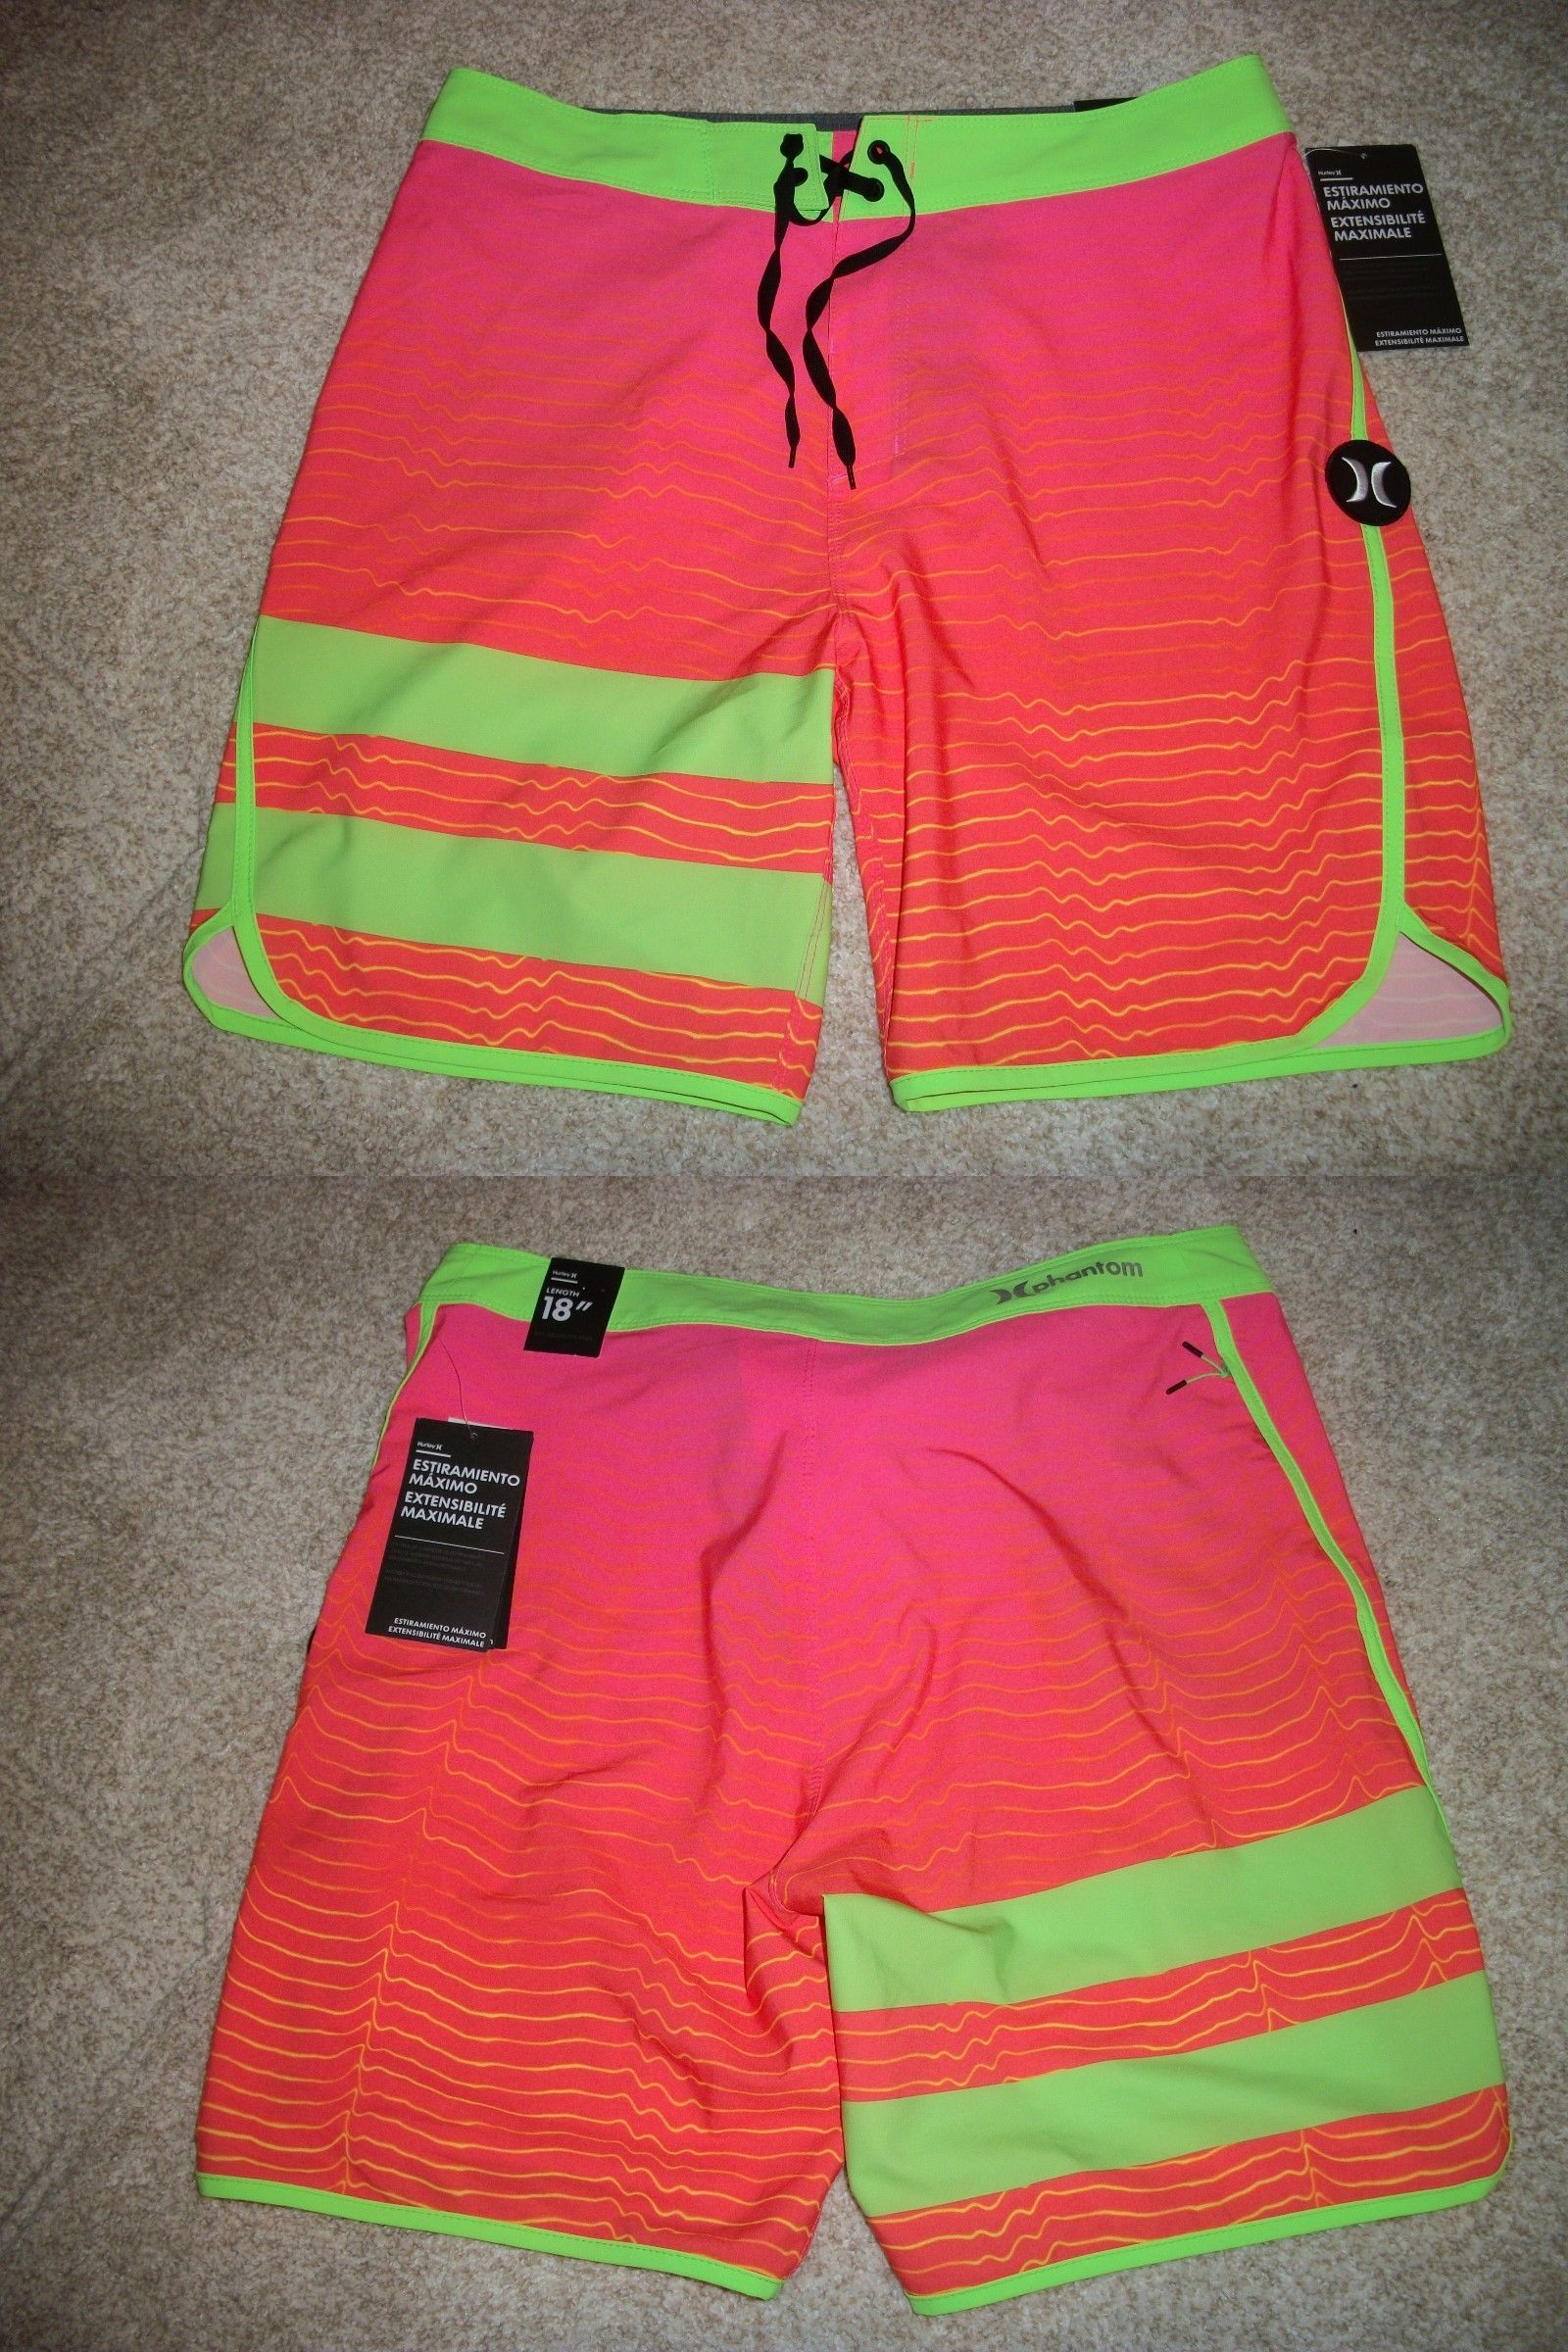 a4db83ca7e Swimwear 15690: Hurley New Nwt Mens Board Shorts Swim Pink Green Phantom 31  32 33 34 36 38 -> BUY IT NOW ONLY: $32.95 on eBay!